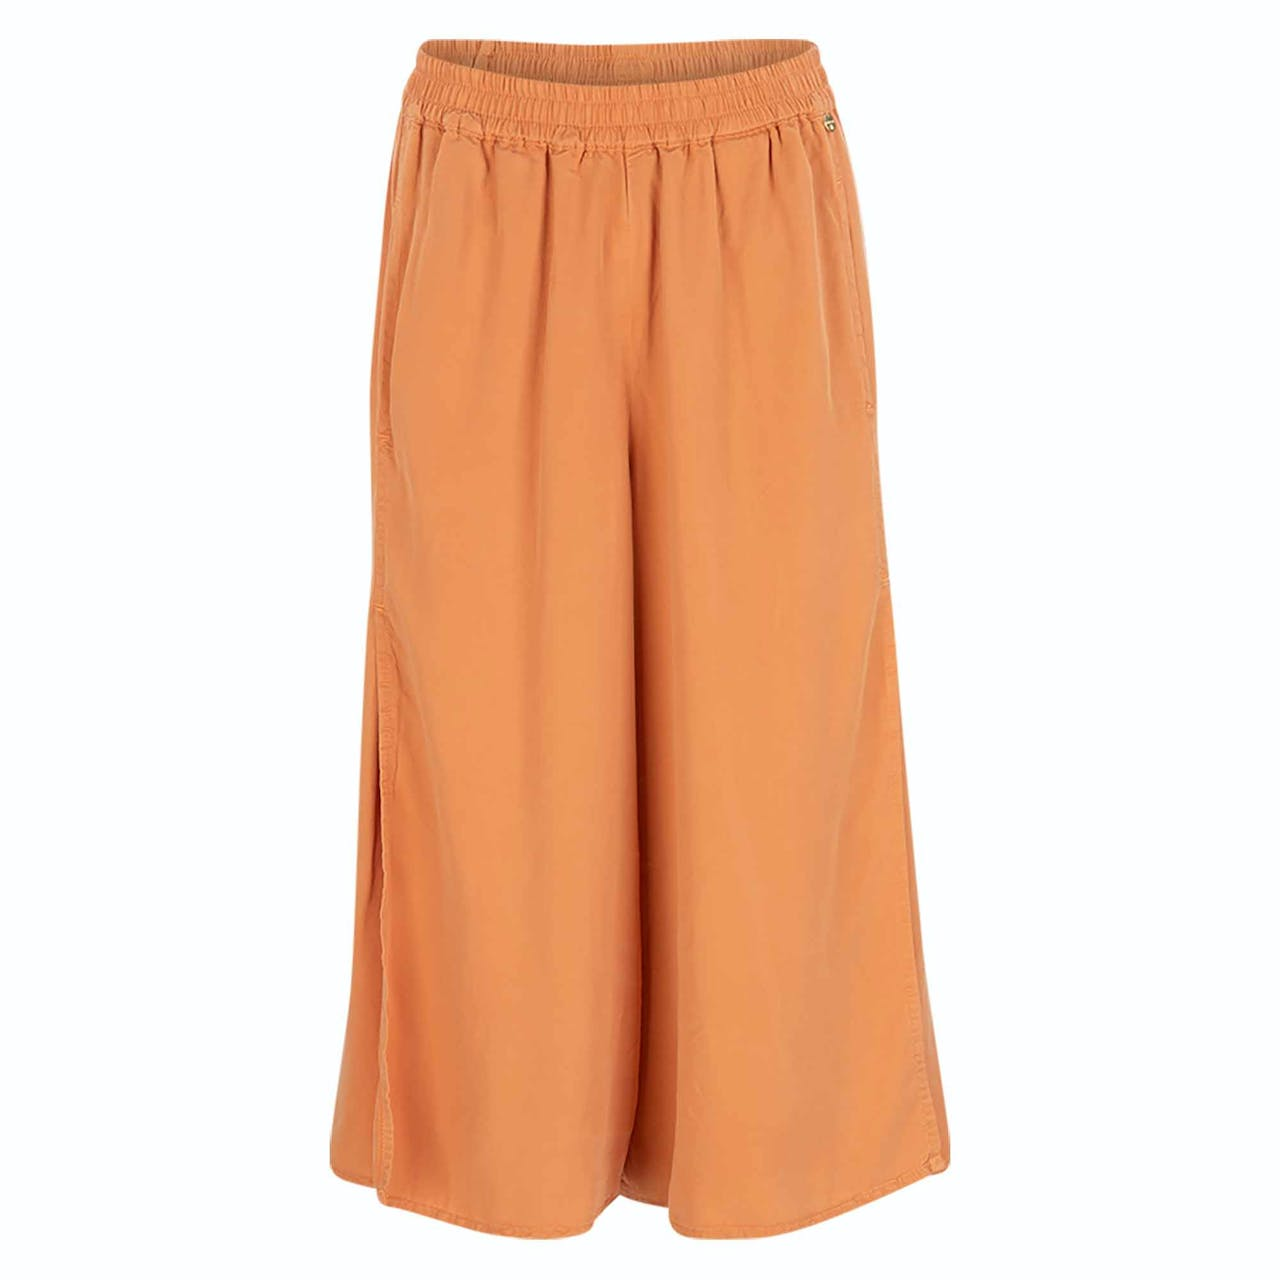 Culotte - Relaxed Fit - Unifarben